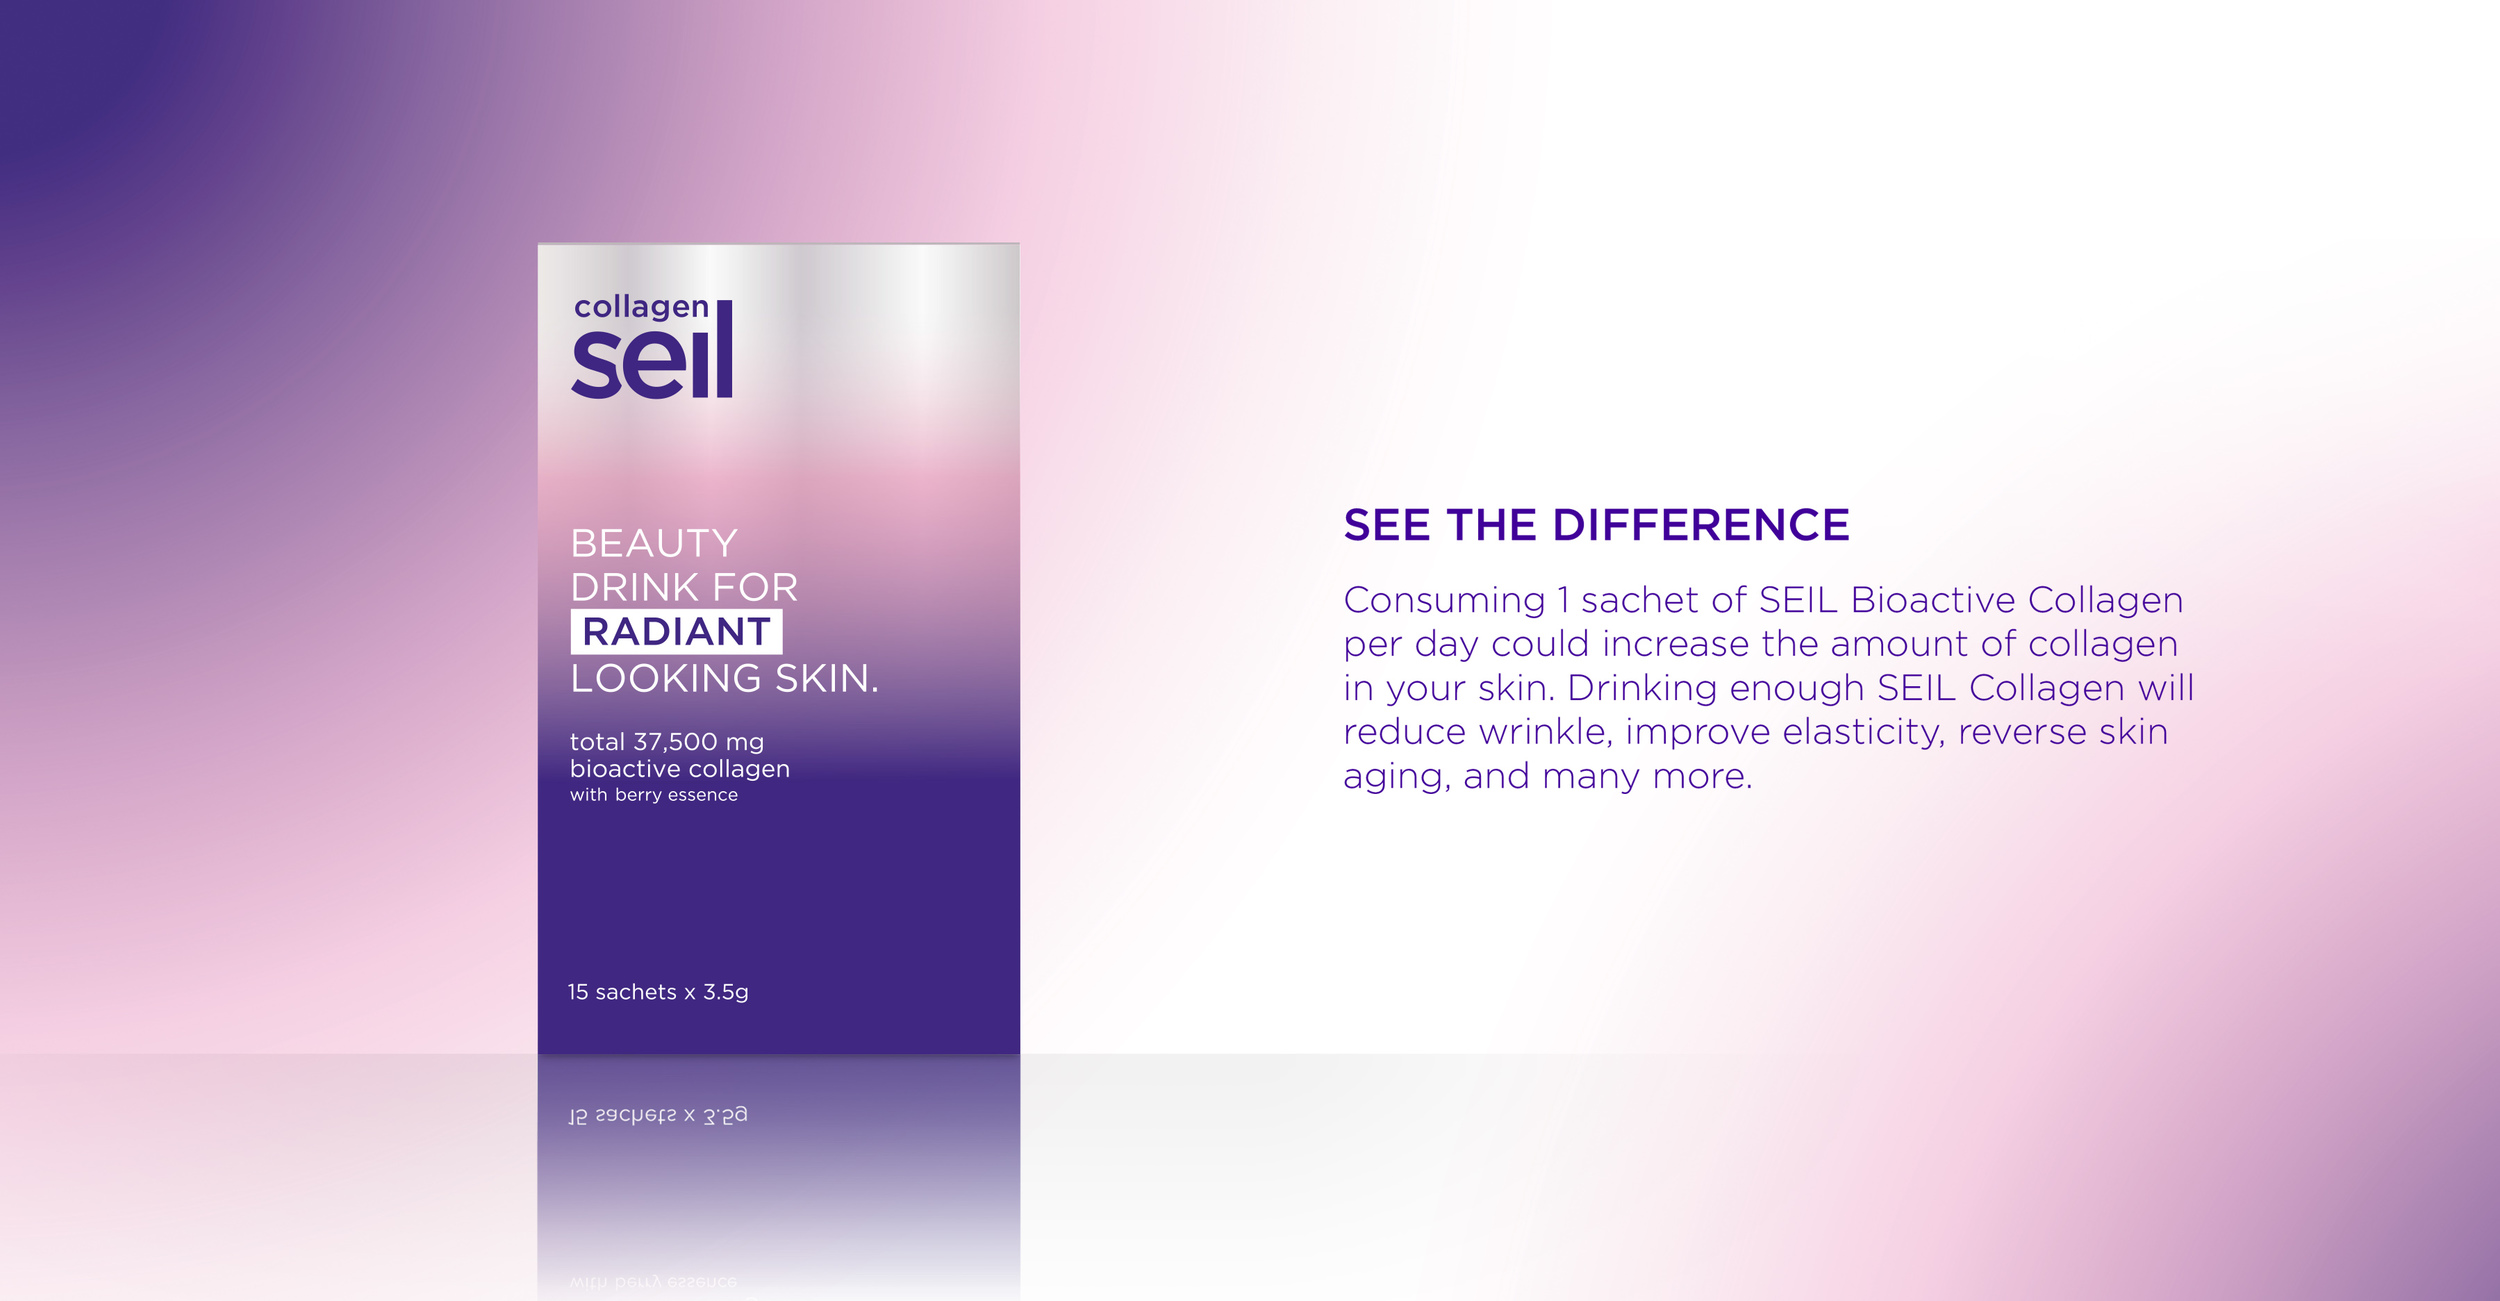 seil see the difference3.jpg